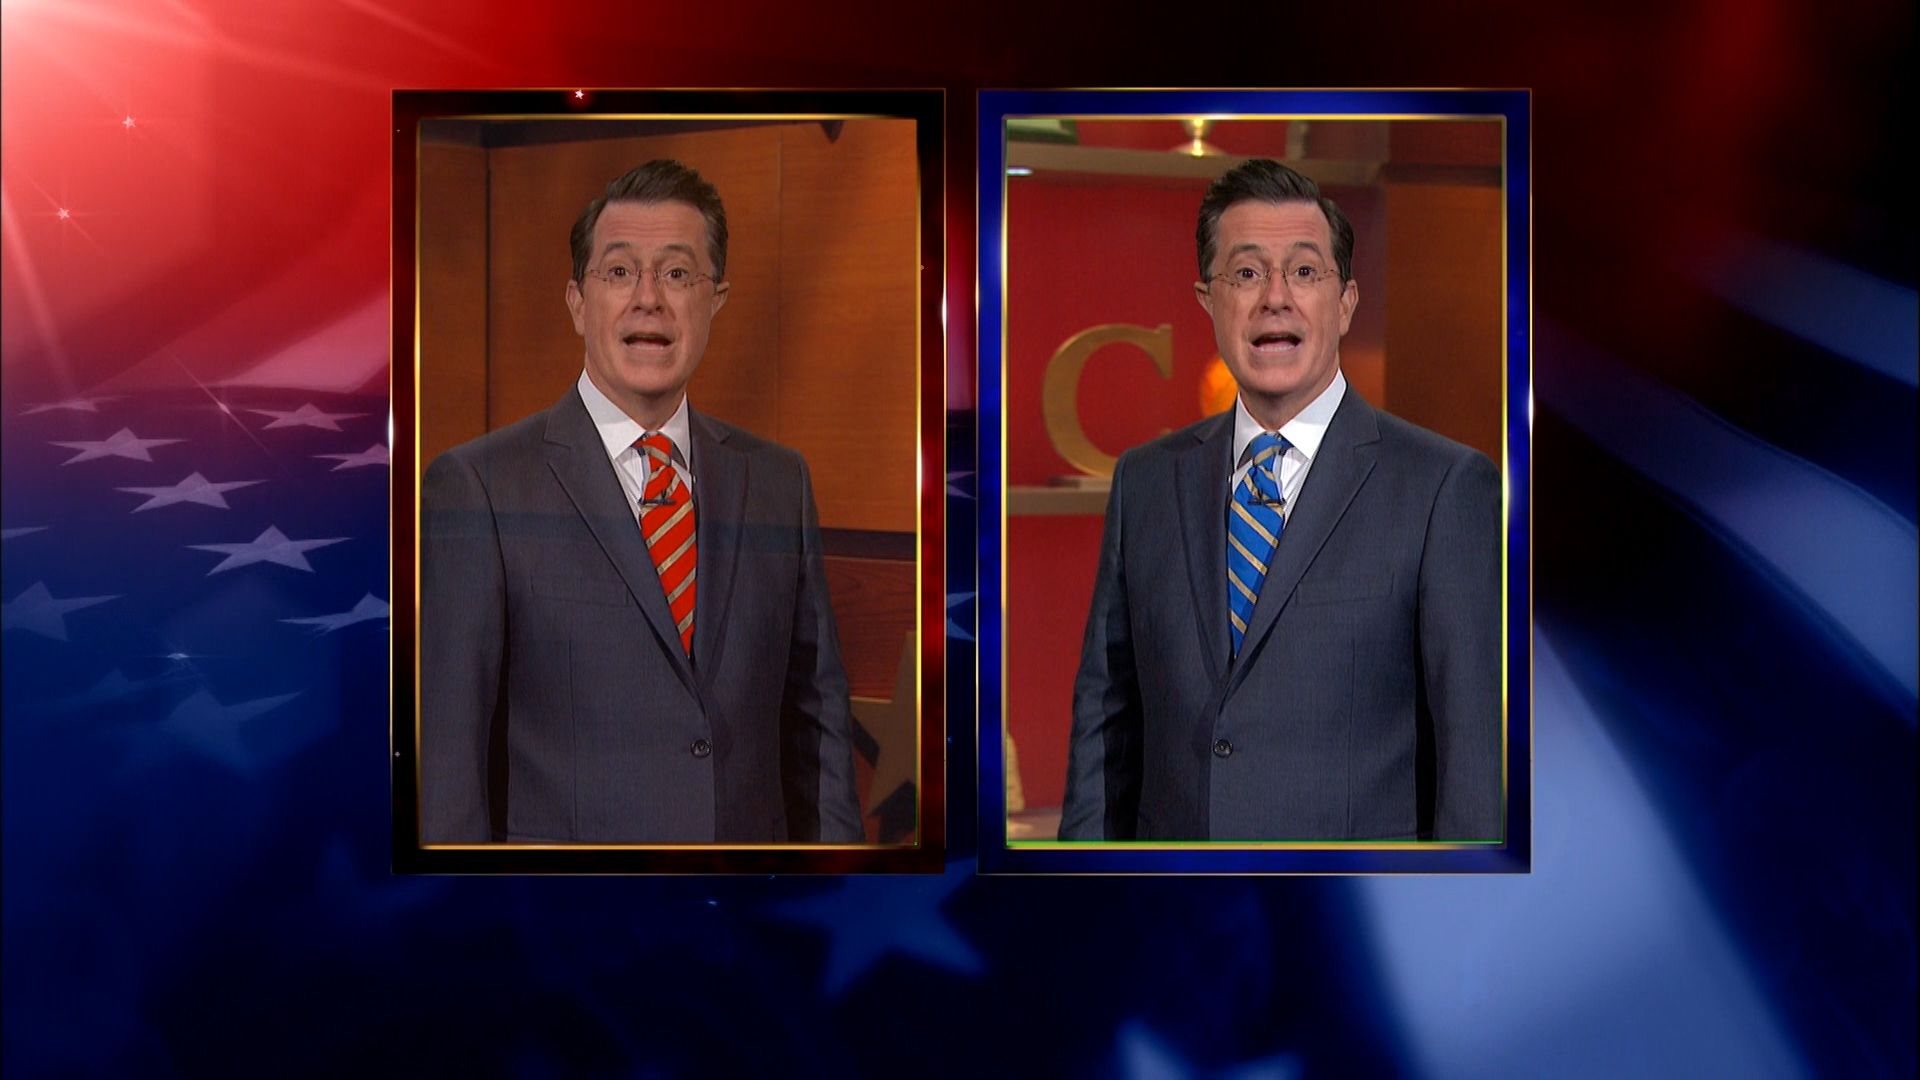 http://thecolbertreport.cc.com/videos/0frisd/formidable-opponent---torture-report